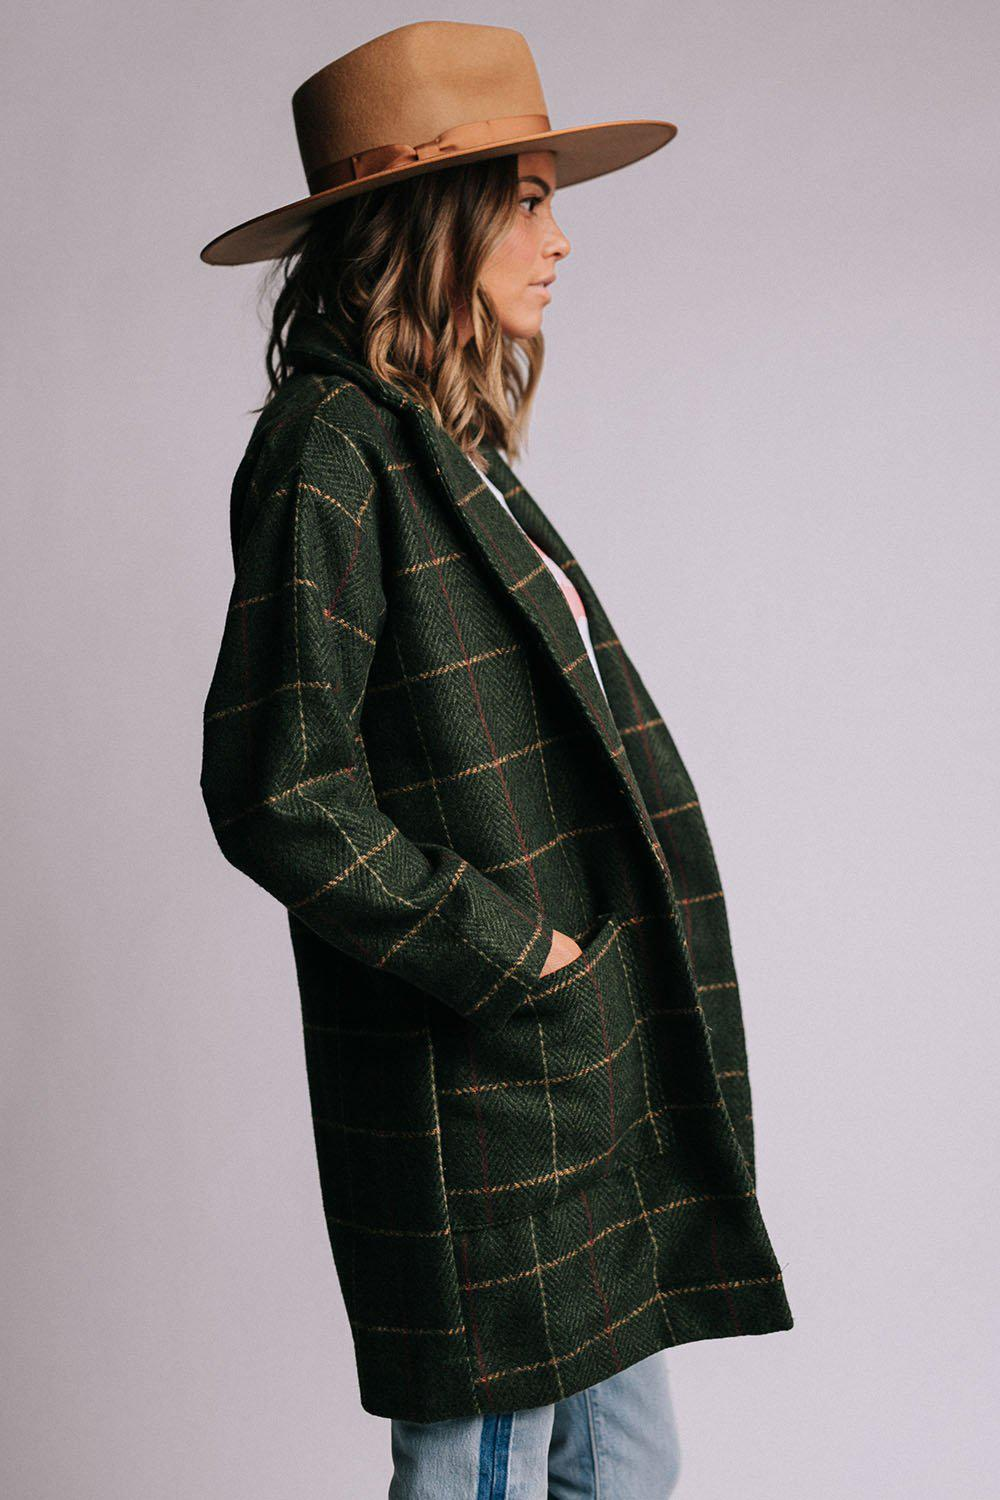 best_seller, Dani Coat in Green, Top, women's clothing, dresses, skirts, coats, jackets, shoes, boots, tops, tee shirts, jeans, free people, levi's, rollas, jumpsuits, bottoms, tops, sweaters, pullovers, pants, shorts, sweats,.